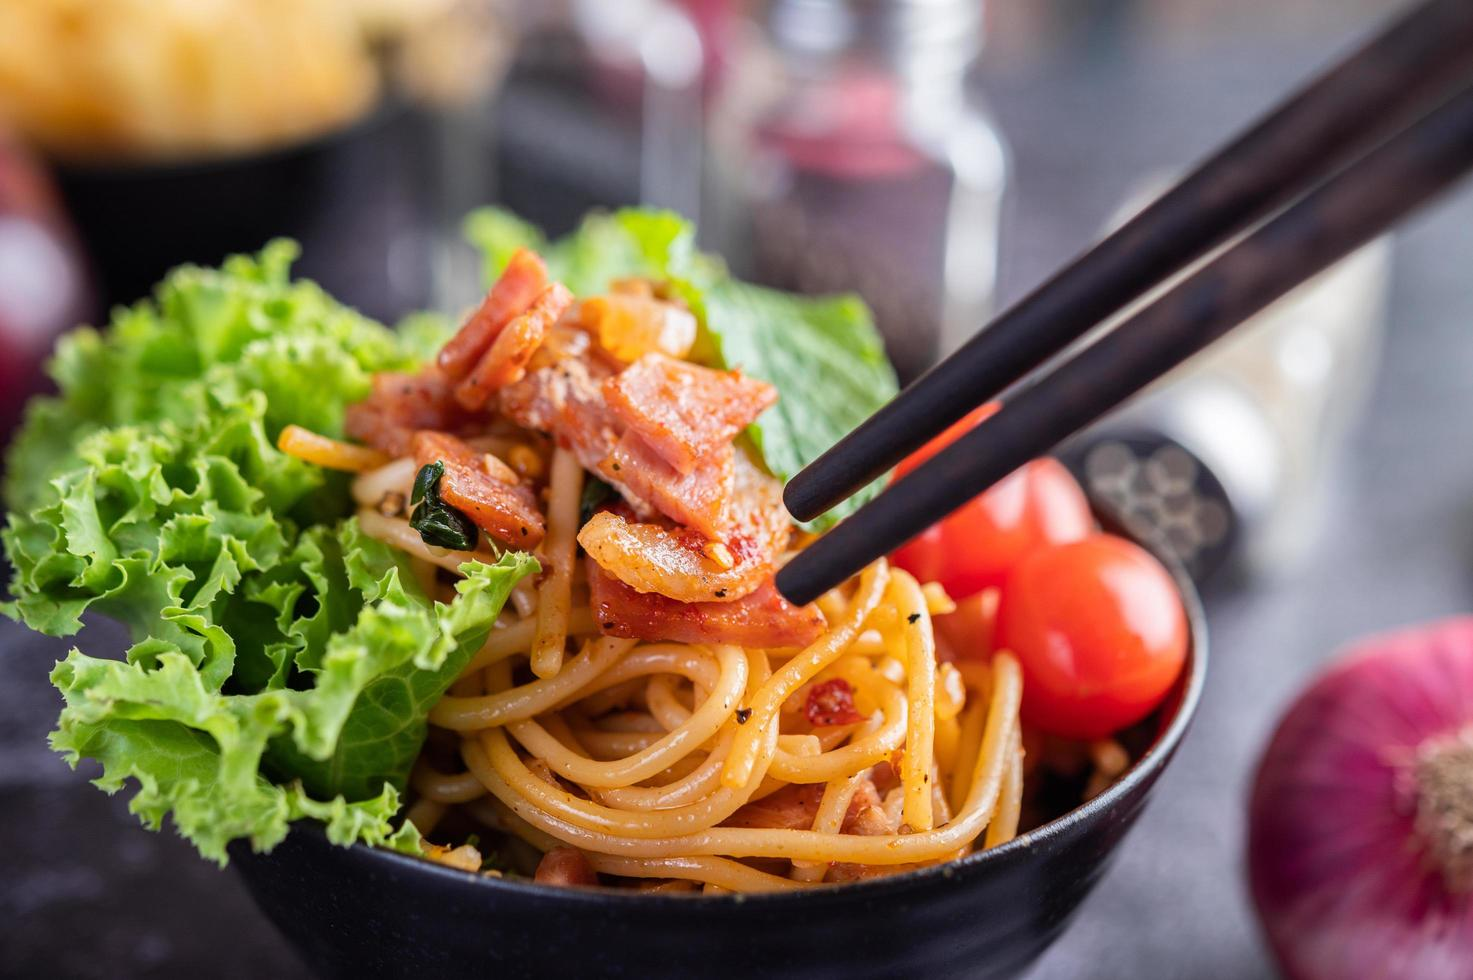 Spaghetti in a black cup with tomatoes and lettuce. photo